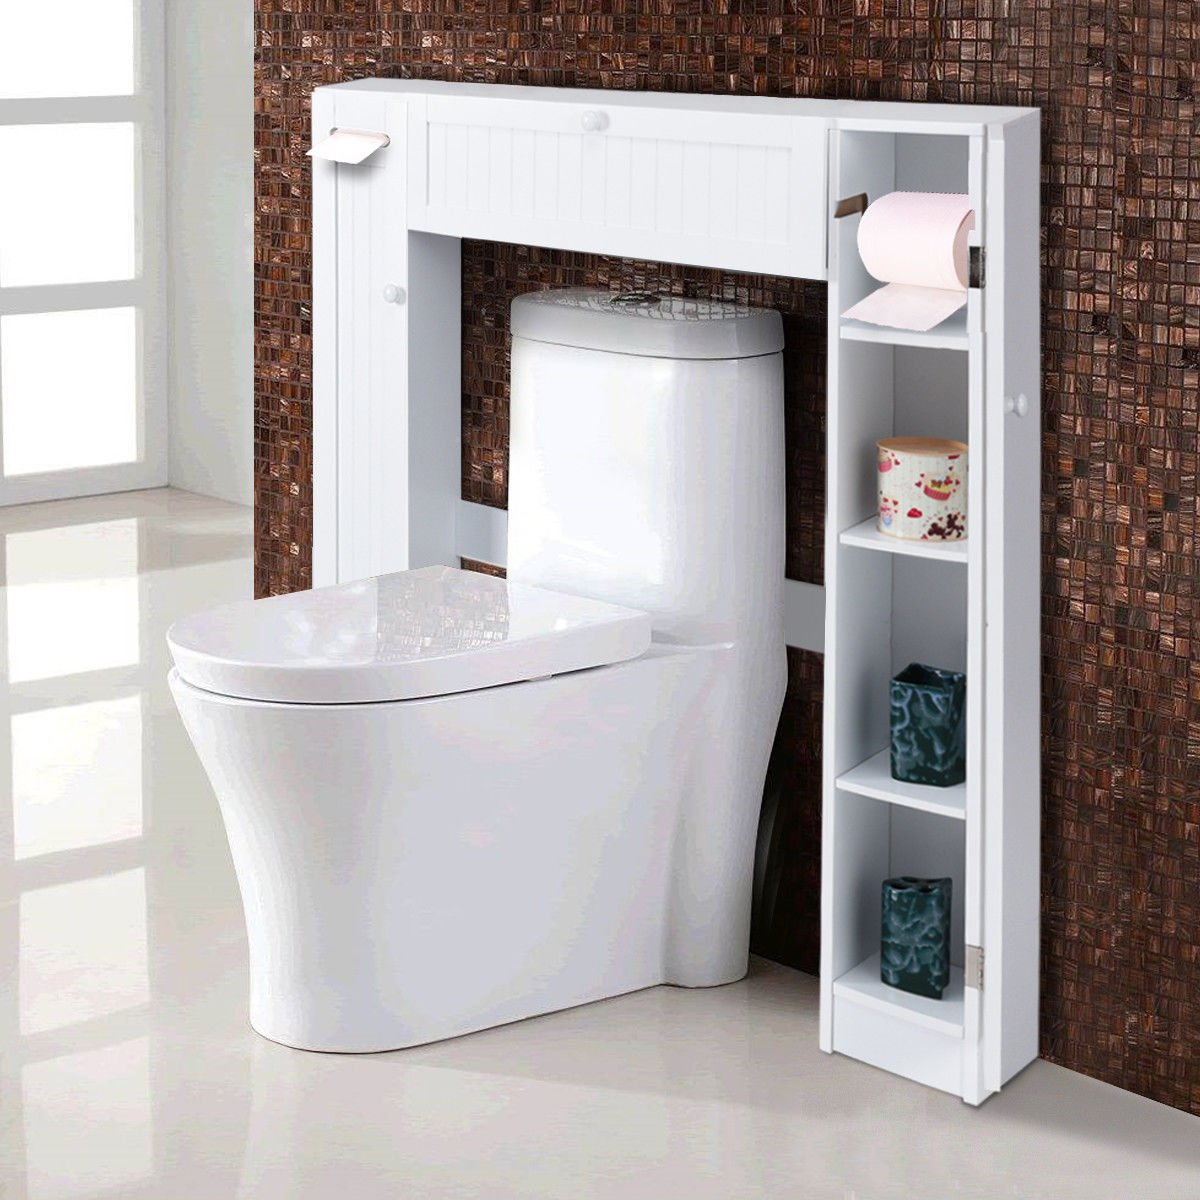 Giantex Over-The-Toilet Bathroom Storage Cabinet Wooden Drop Door Freestanding Spacesaver Improvements, White HW56628